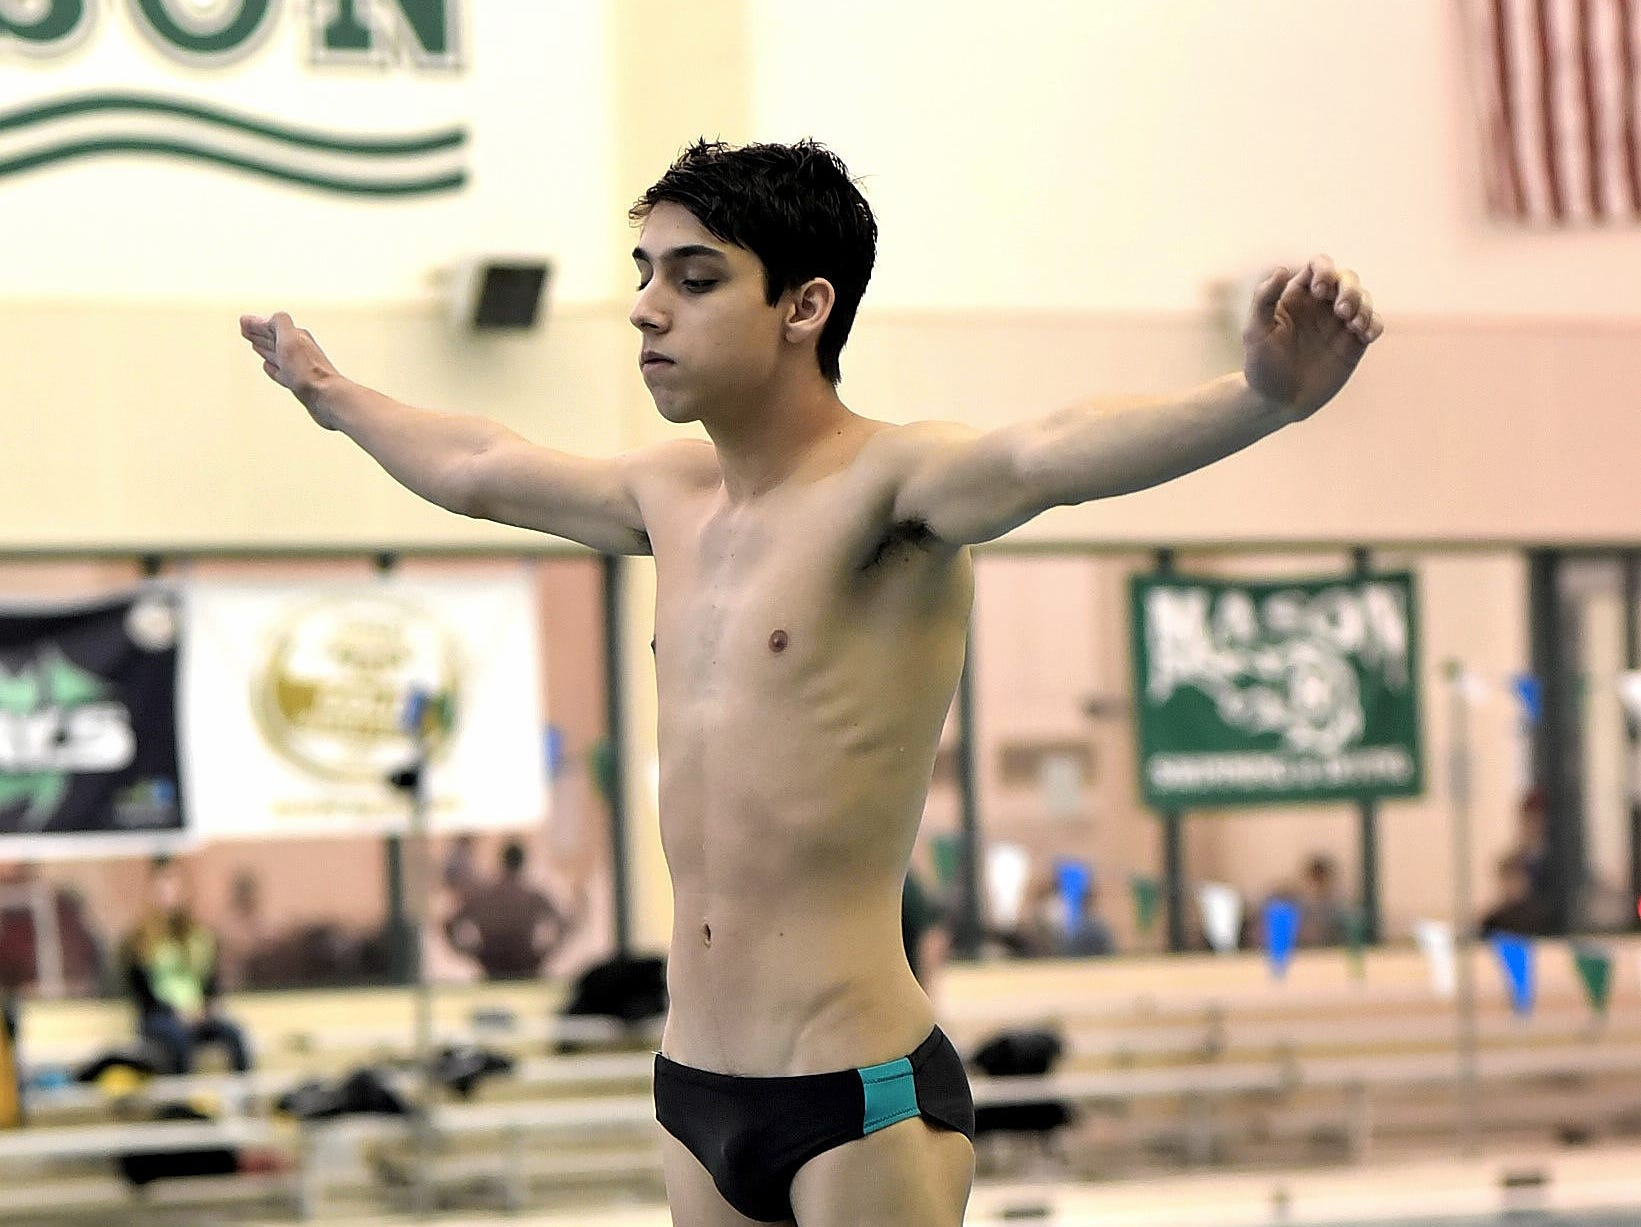 Matthew Wagner of Mason is locked on as he readies another preliminary dive at the Southwest Ohio Swimming and Diving Classic, January 19, 2019.